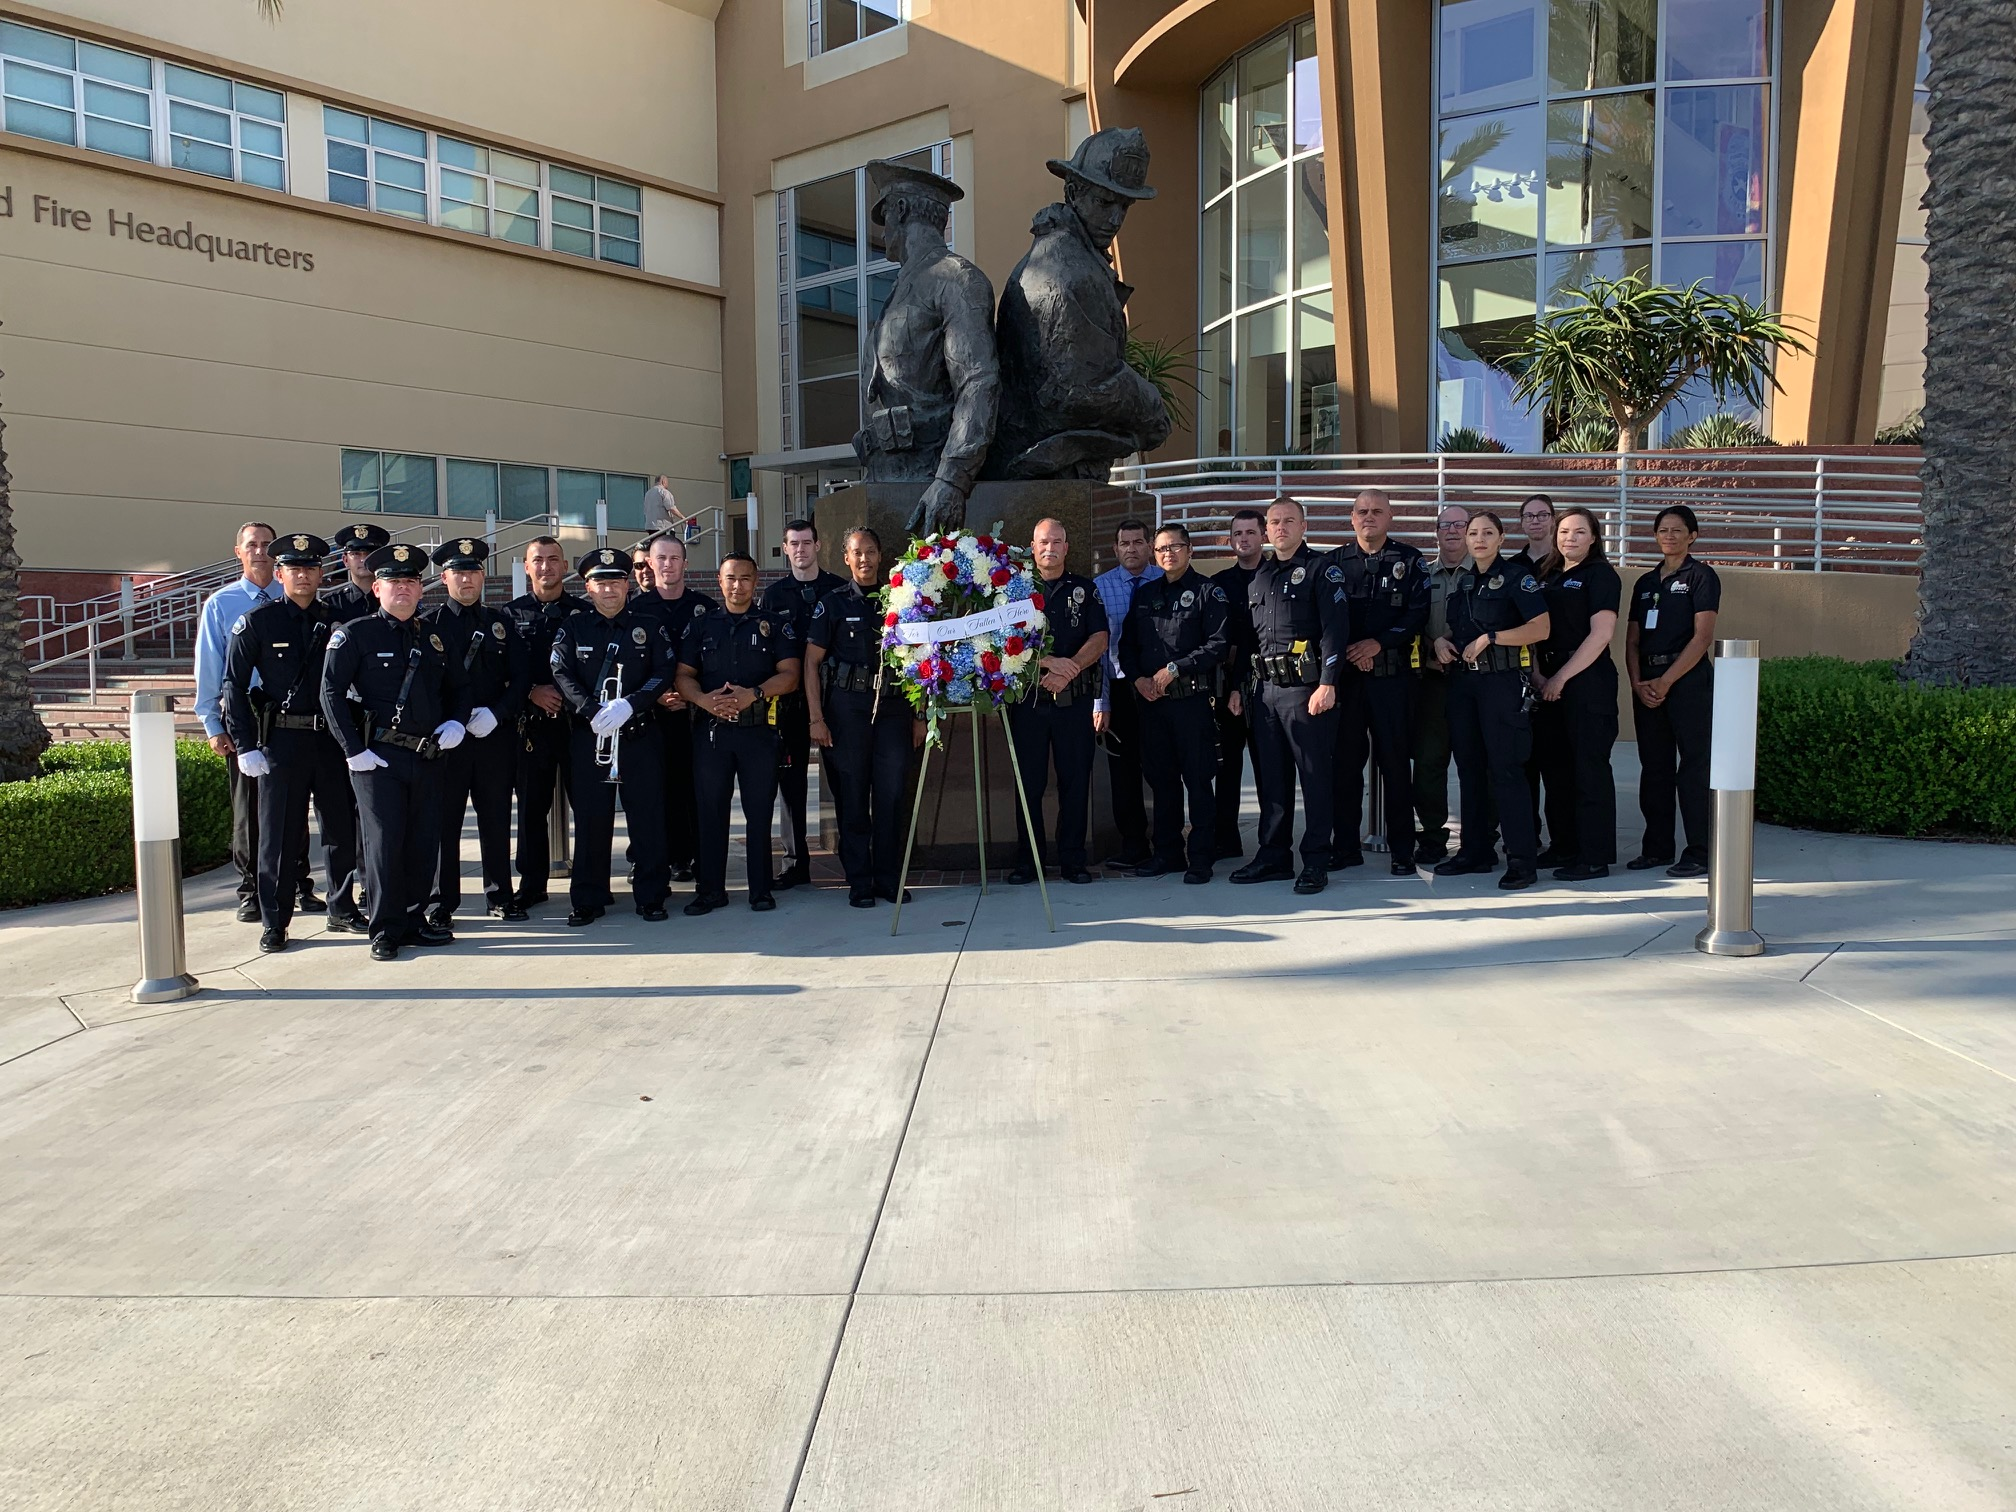 HONORING BURBANK POLICE DEPARTMENT FALLEN OFFICER